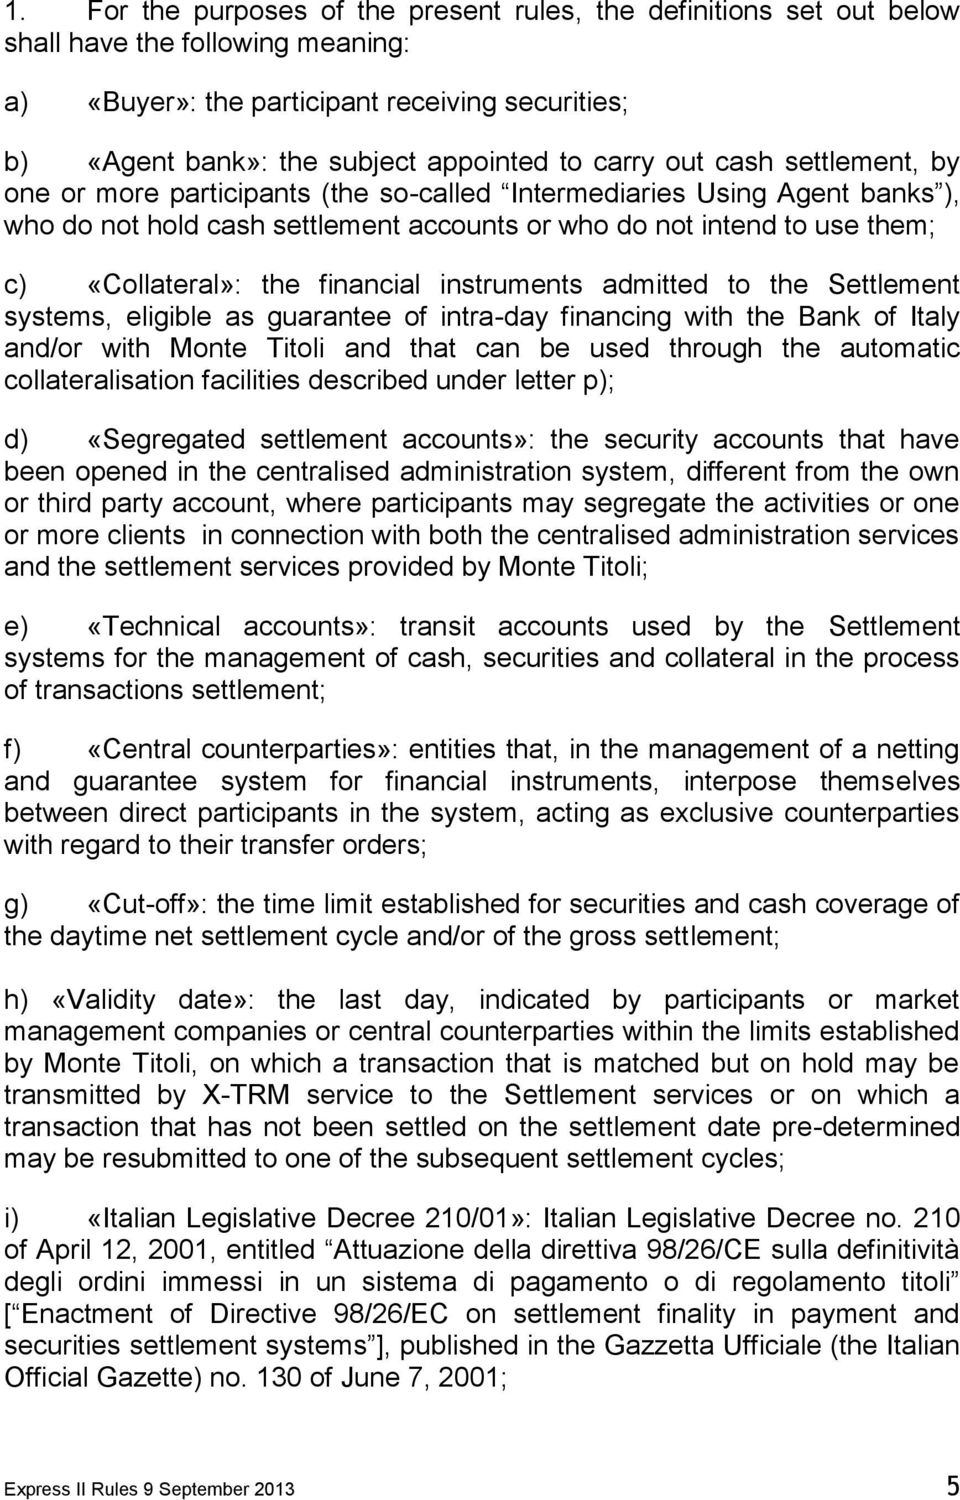 the financial instruments admitted to the Settlement systems, eligible as guarantee of intra-day financing with the Bank of Italy and/or with Monte Titoli and that can be used through the automatic